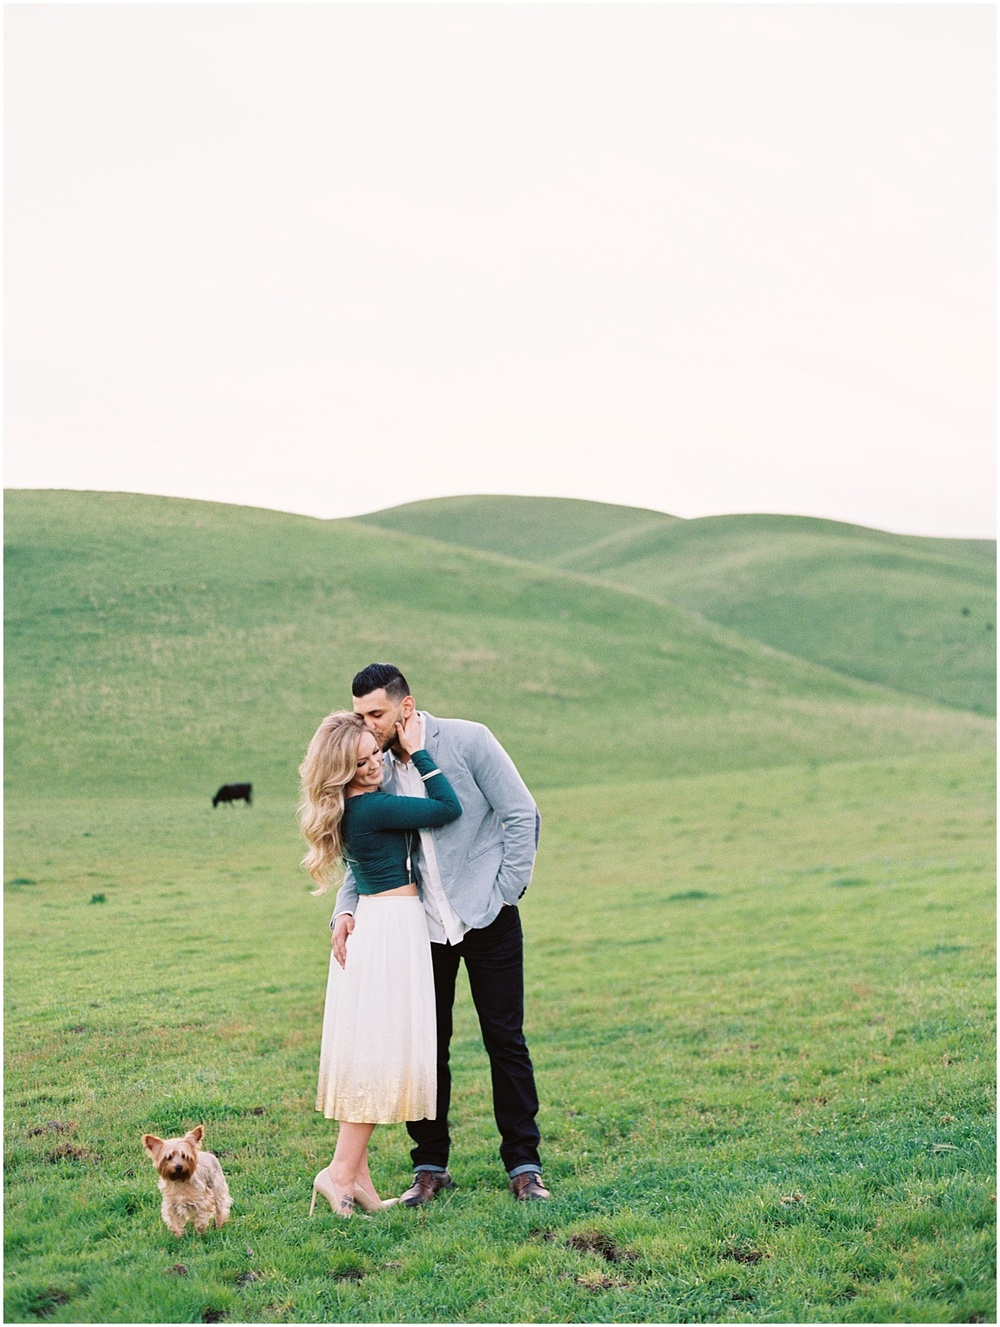 Napa_Engagement_Photos_010.jpg